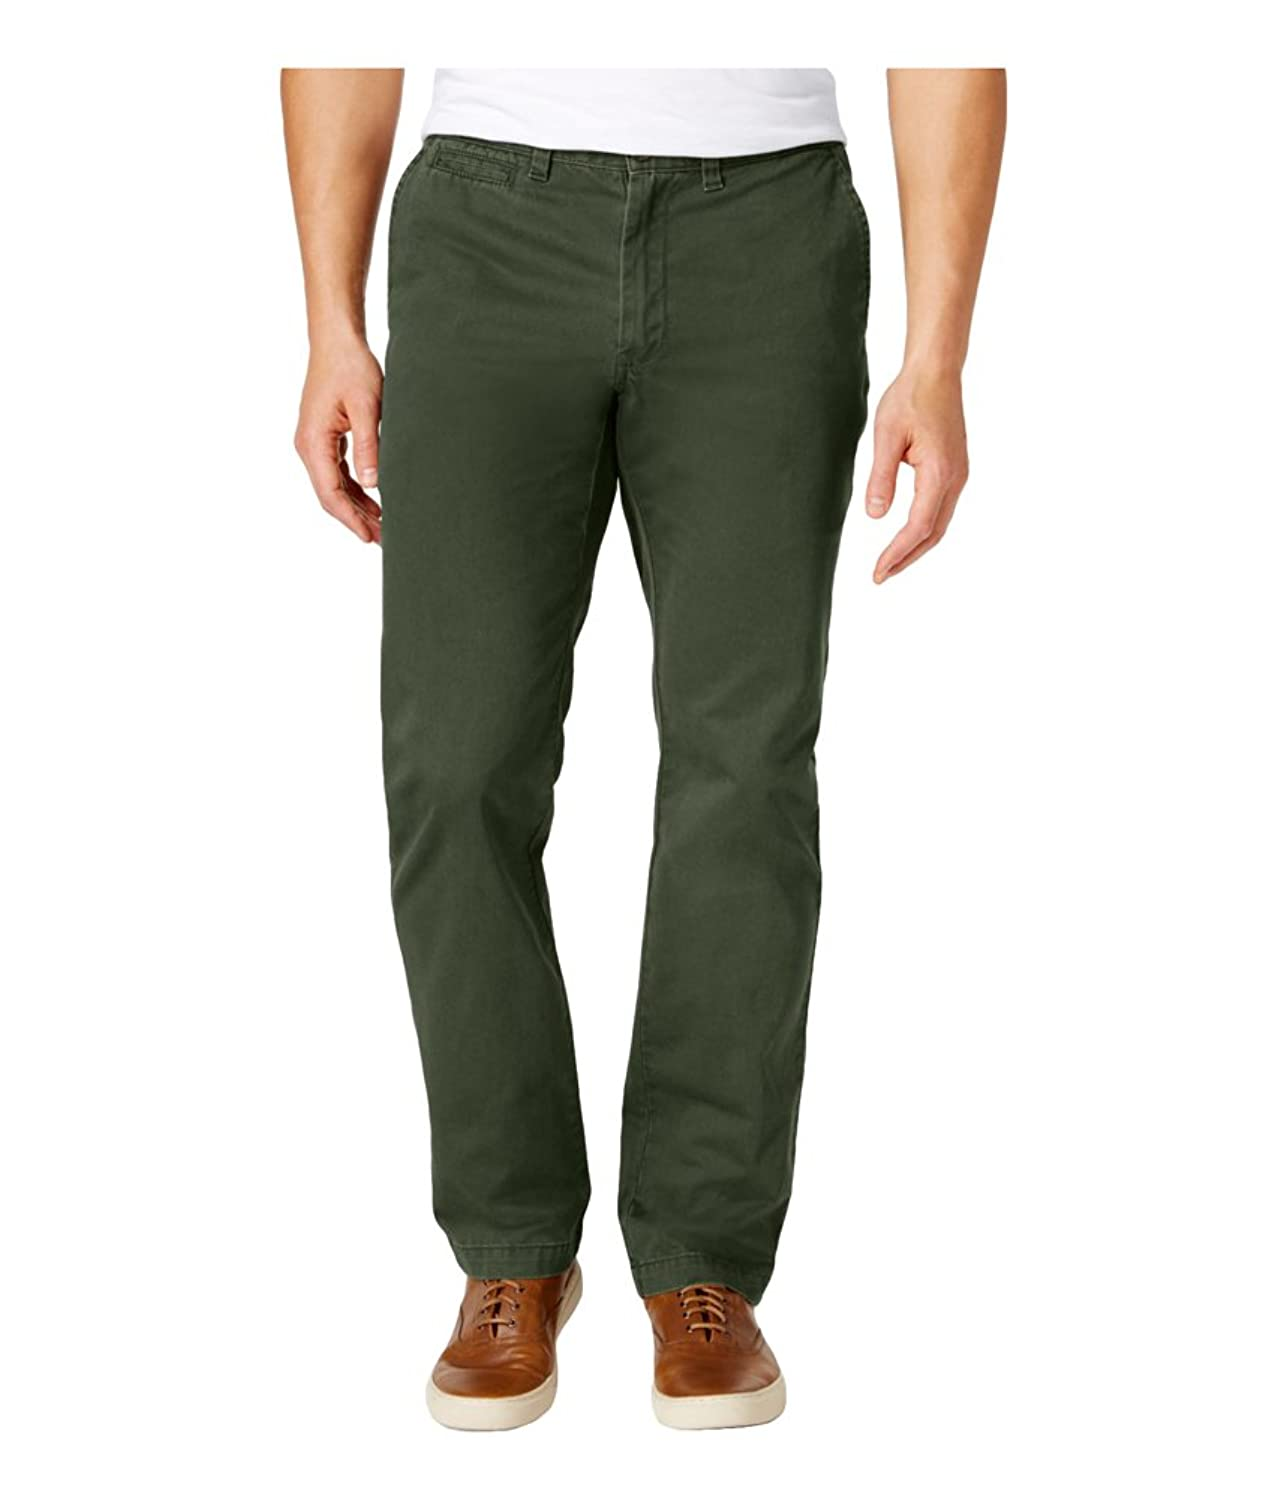 American Rag Mens Slim Straight Casual Chino Pants